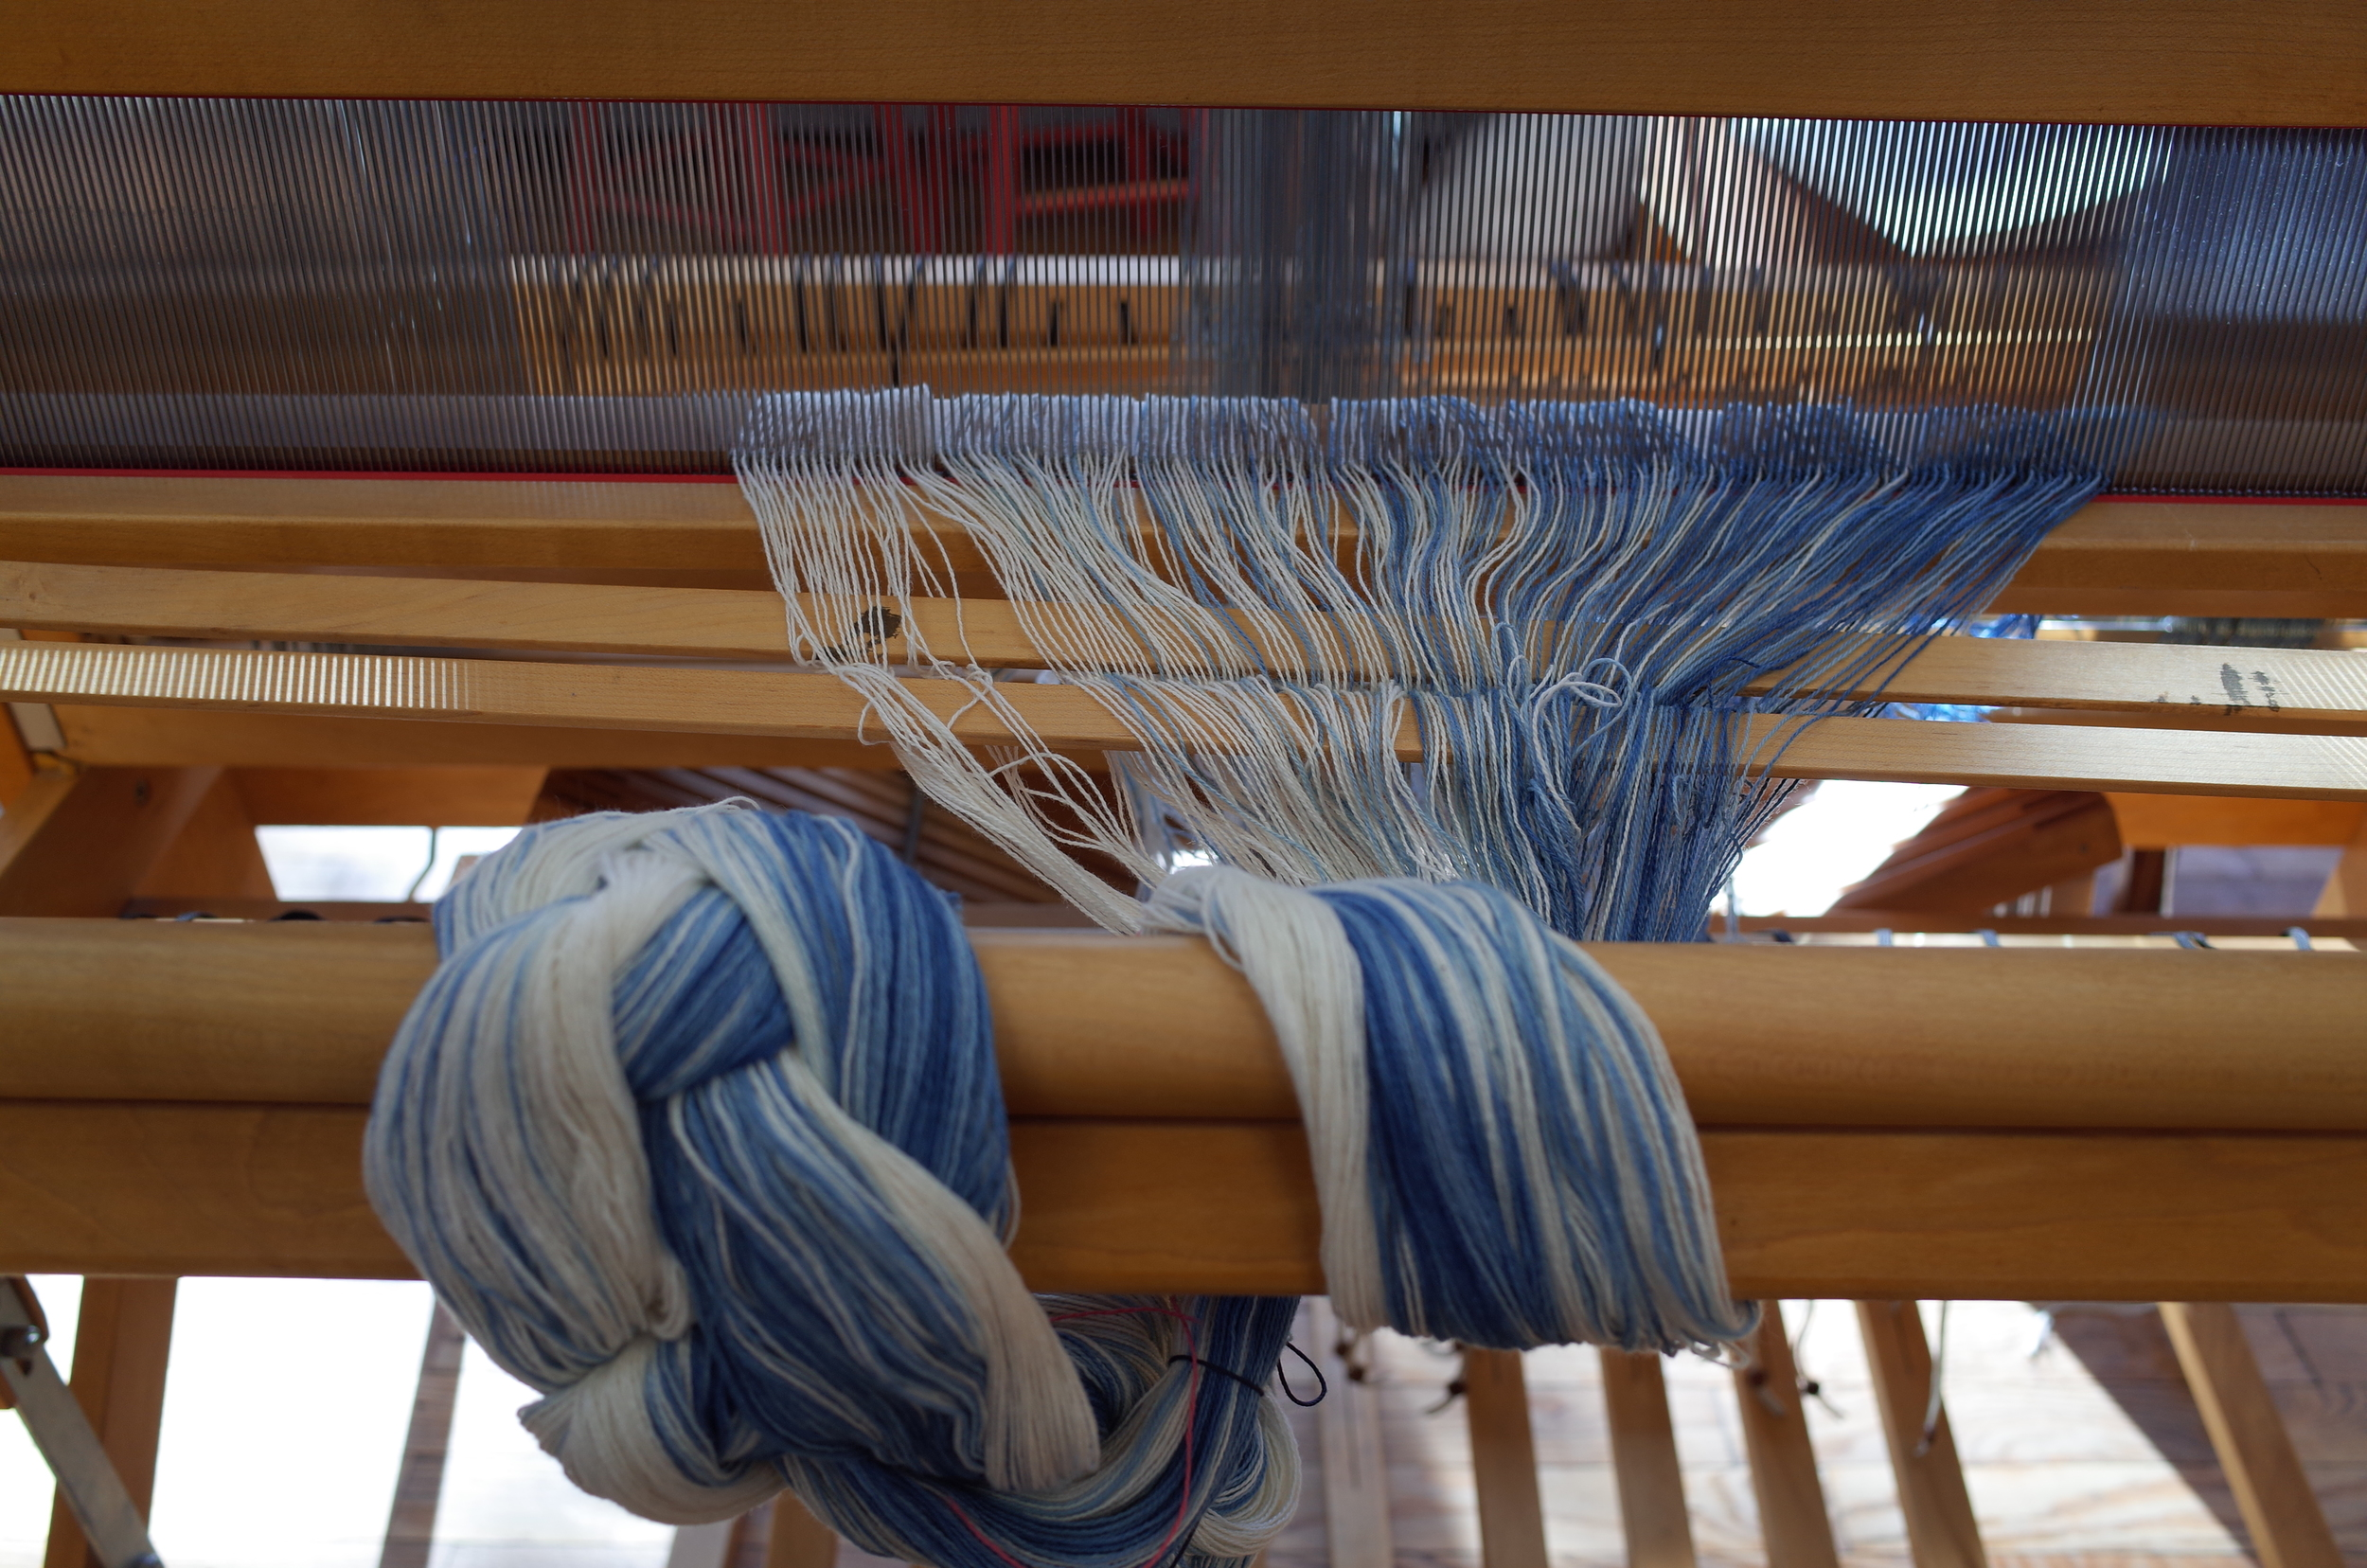 Starting to dress the loom.